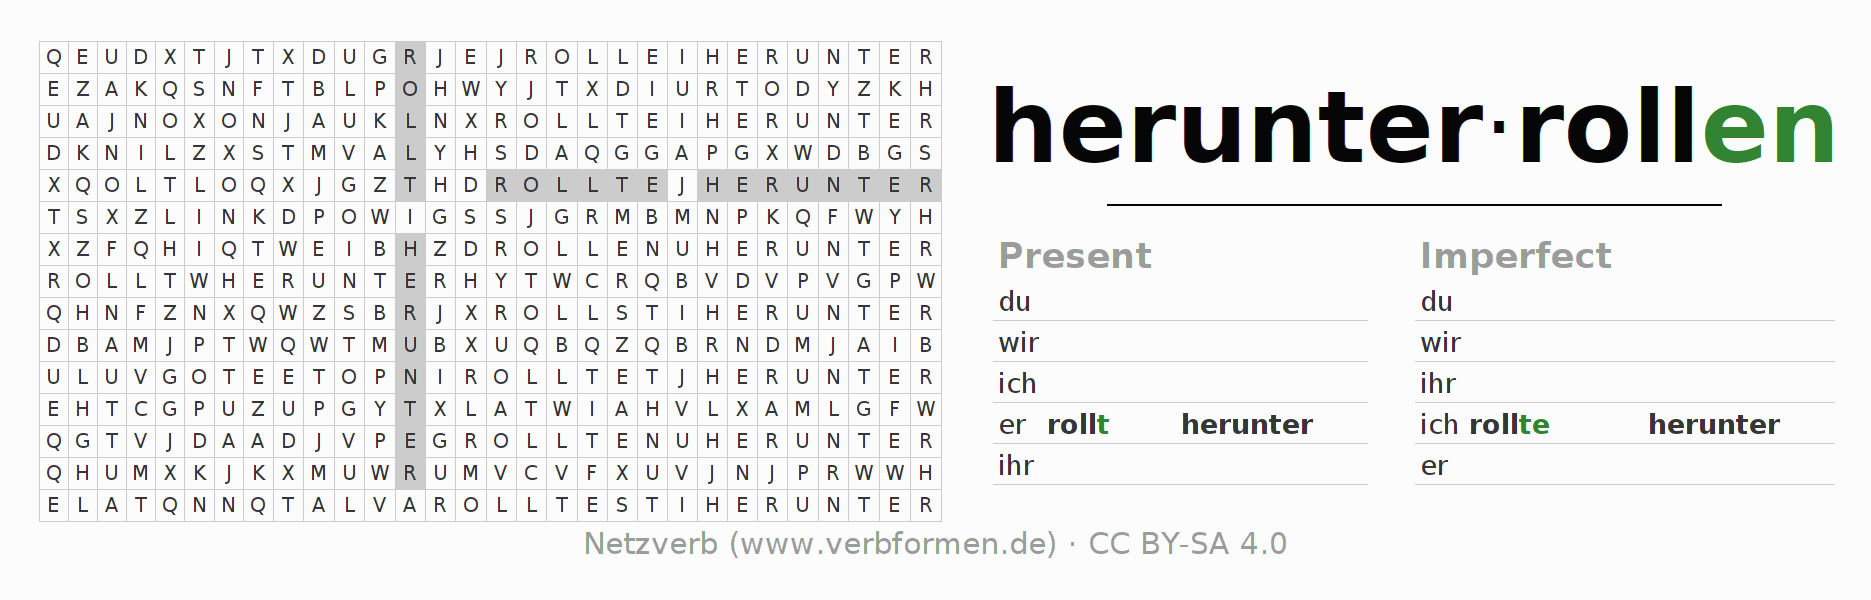 Word search puzzle for the conjugation of the verb herunterrollen (ist)